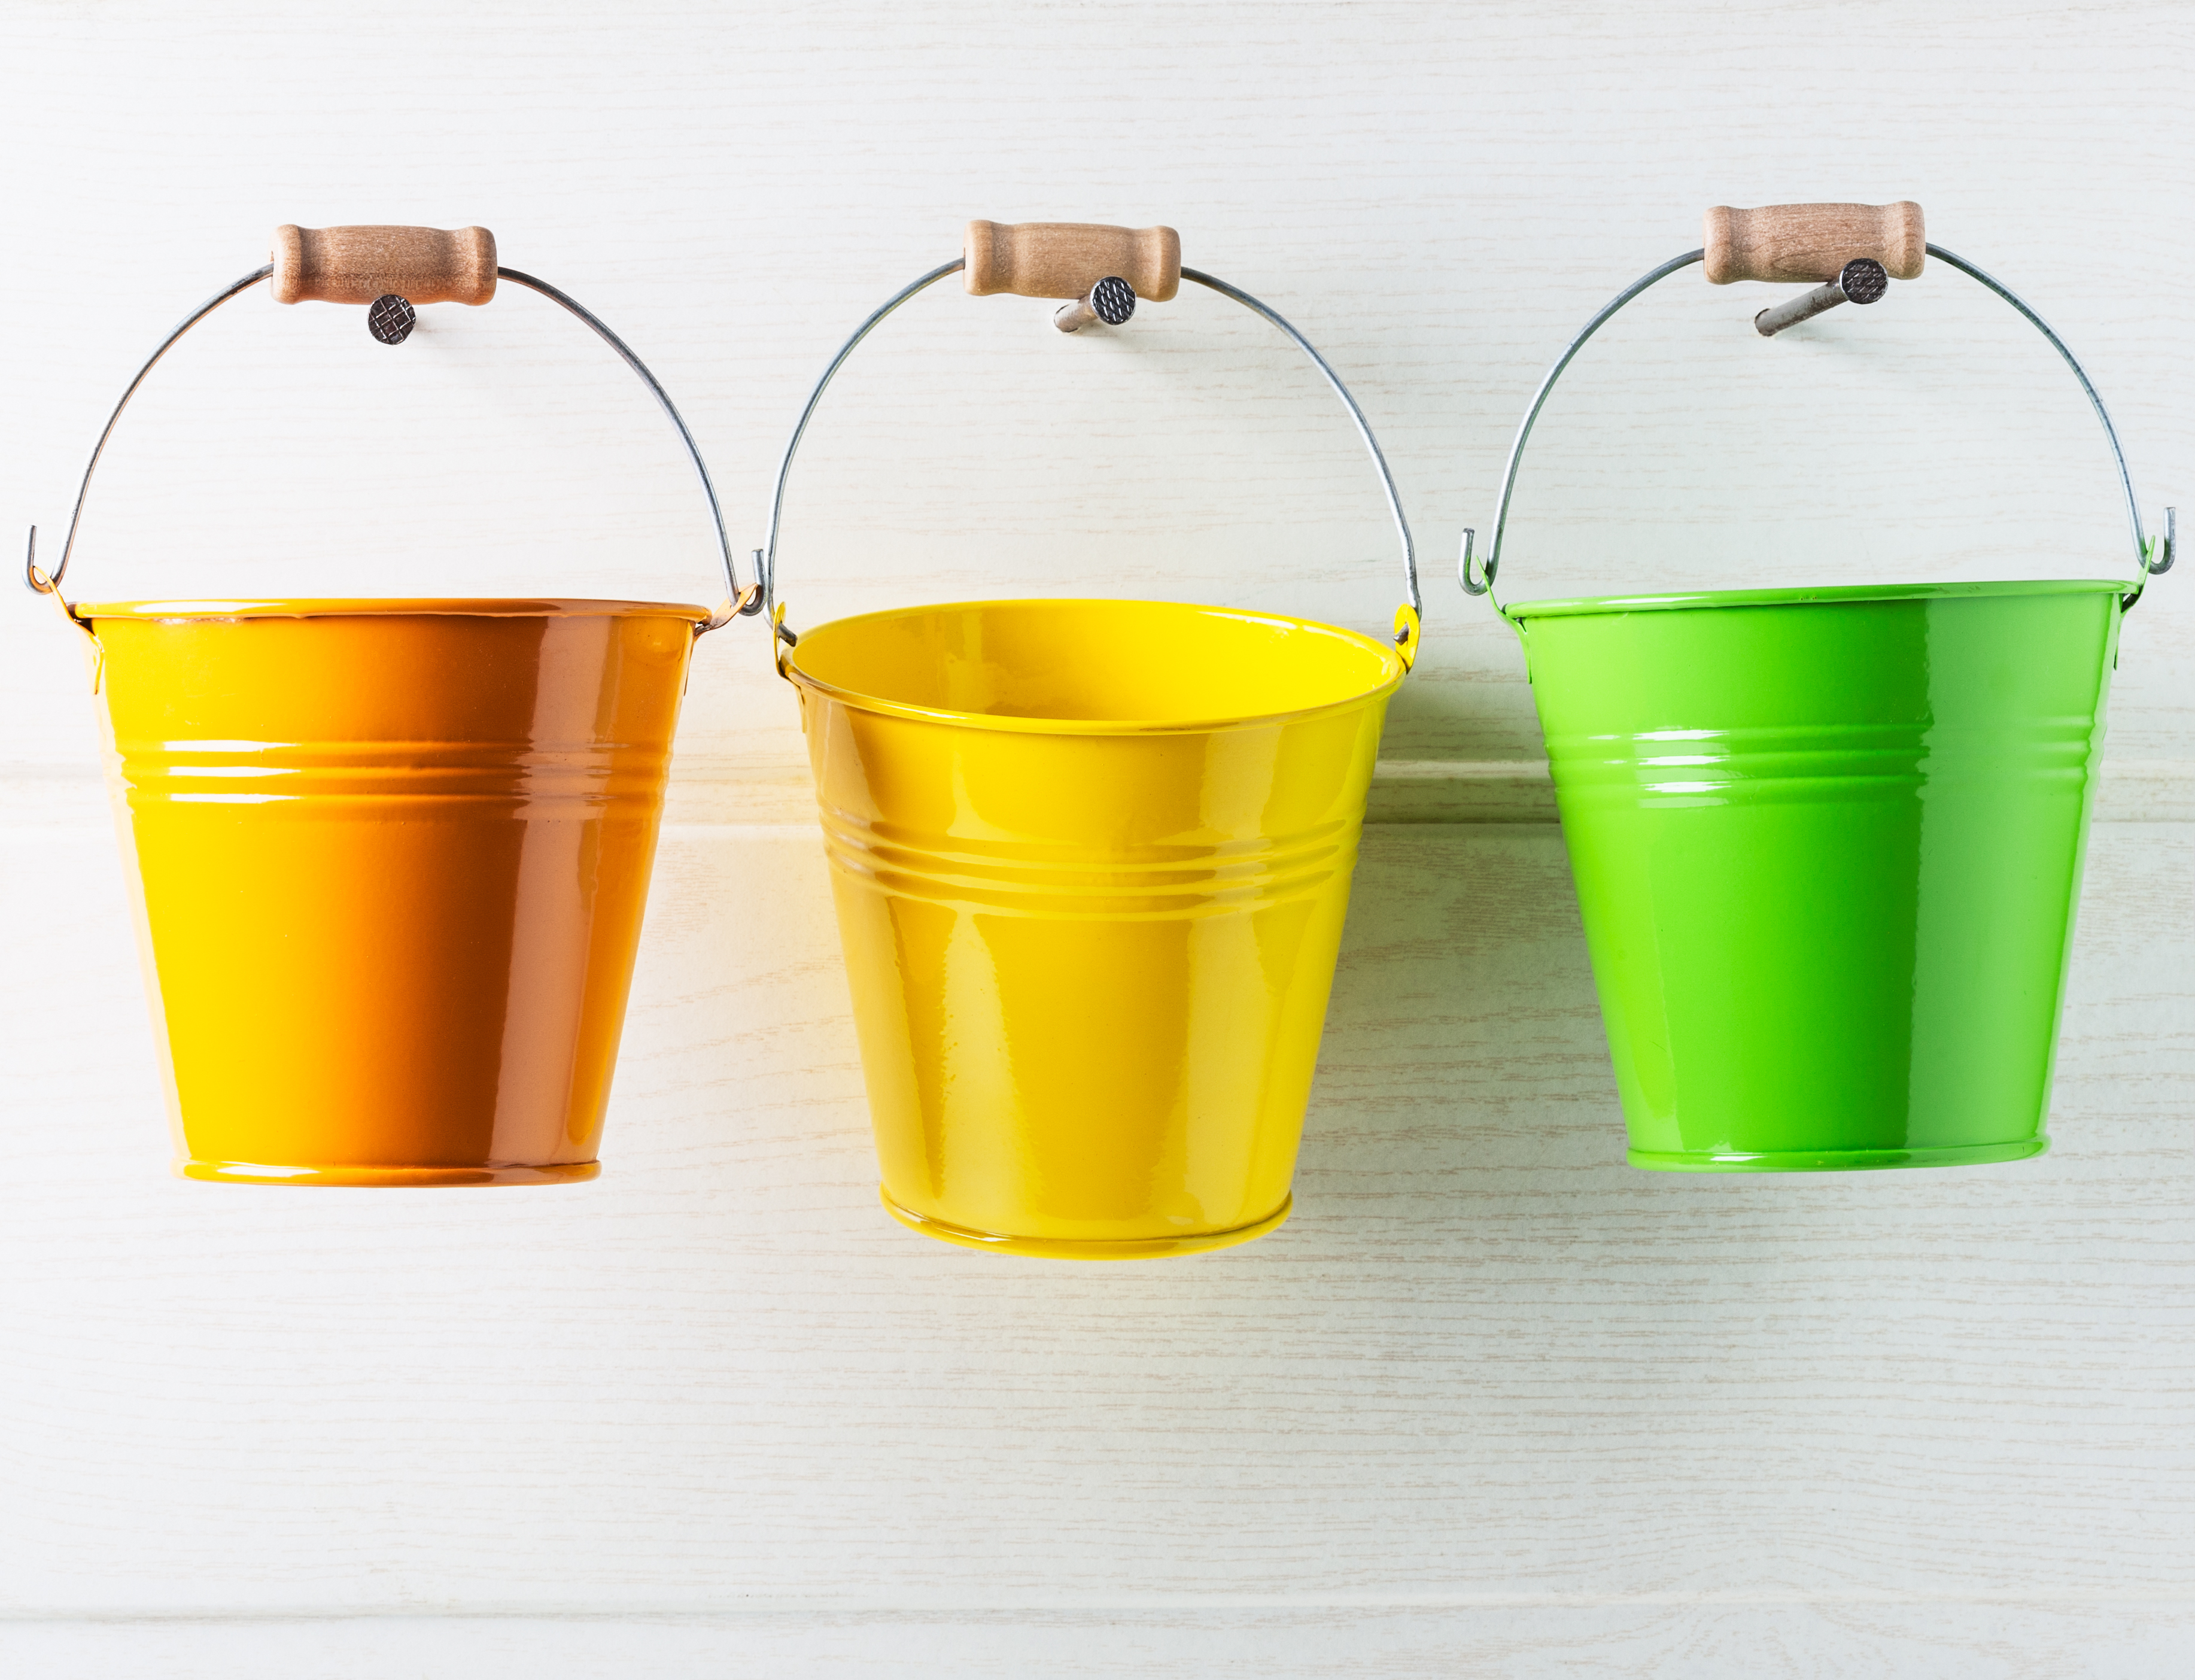 Row of colorful hanging buckets